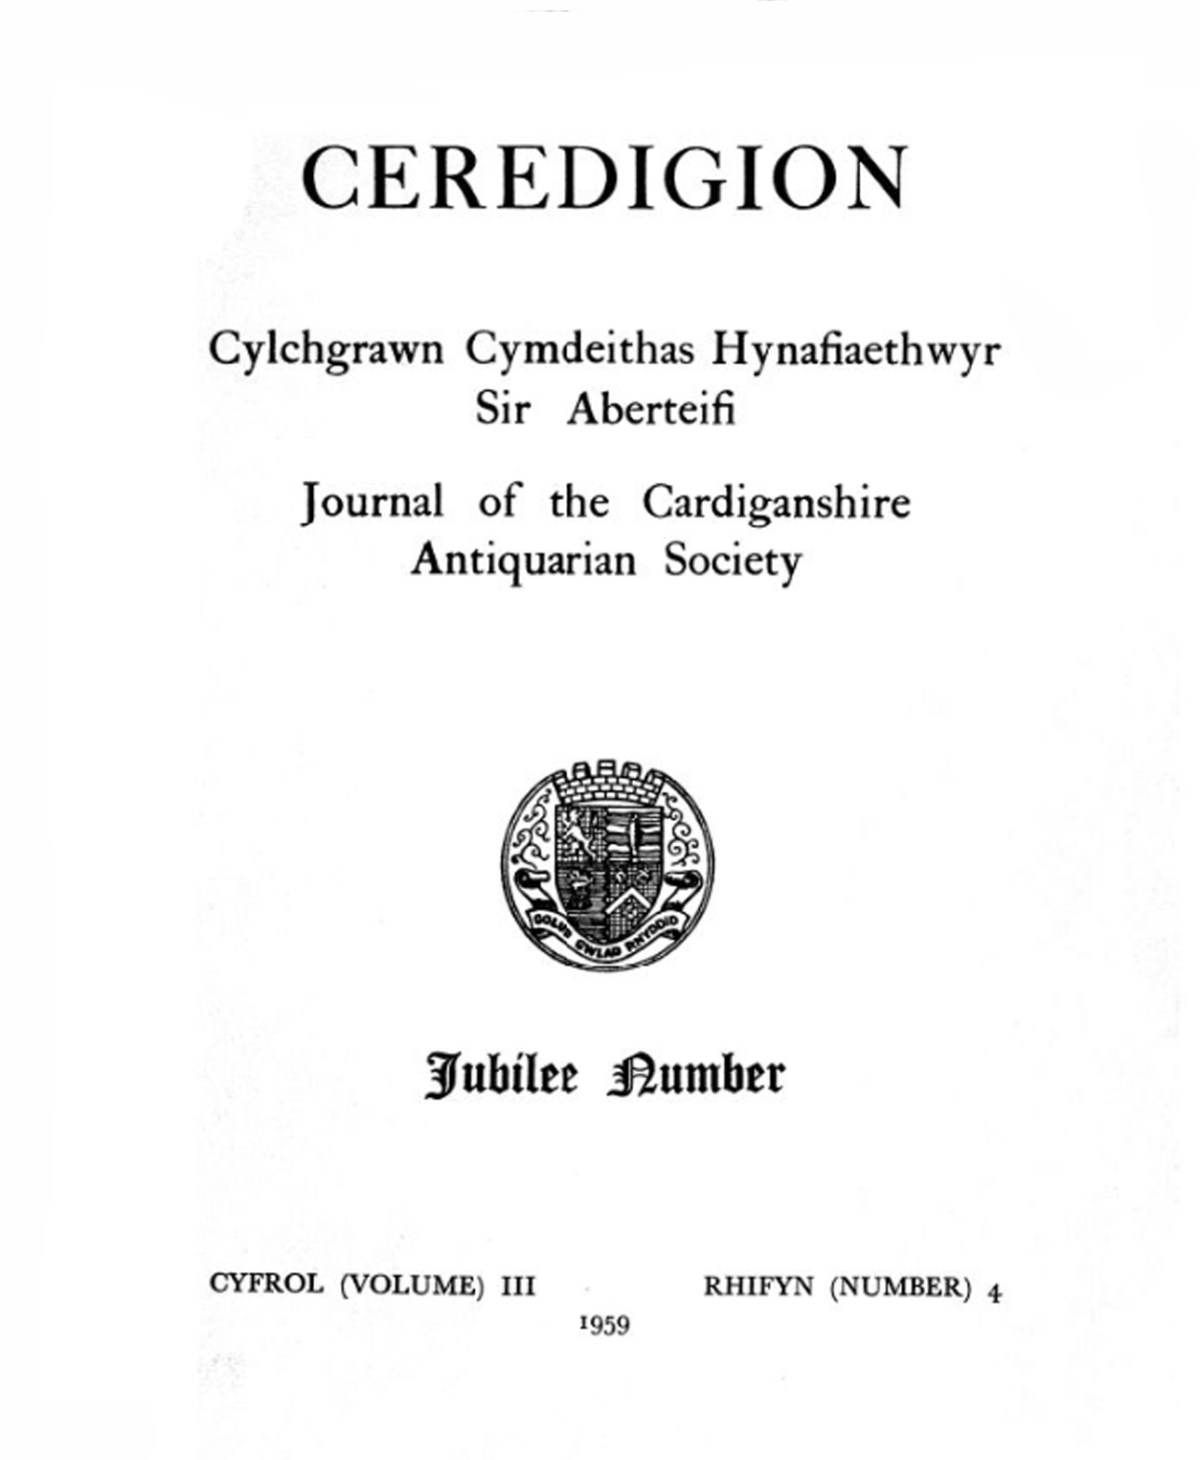 Ceredigion – Journal of the Cardiganshire Antiquarian Society, 1959 Vol III No 4